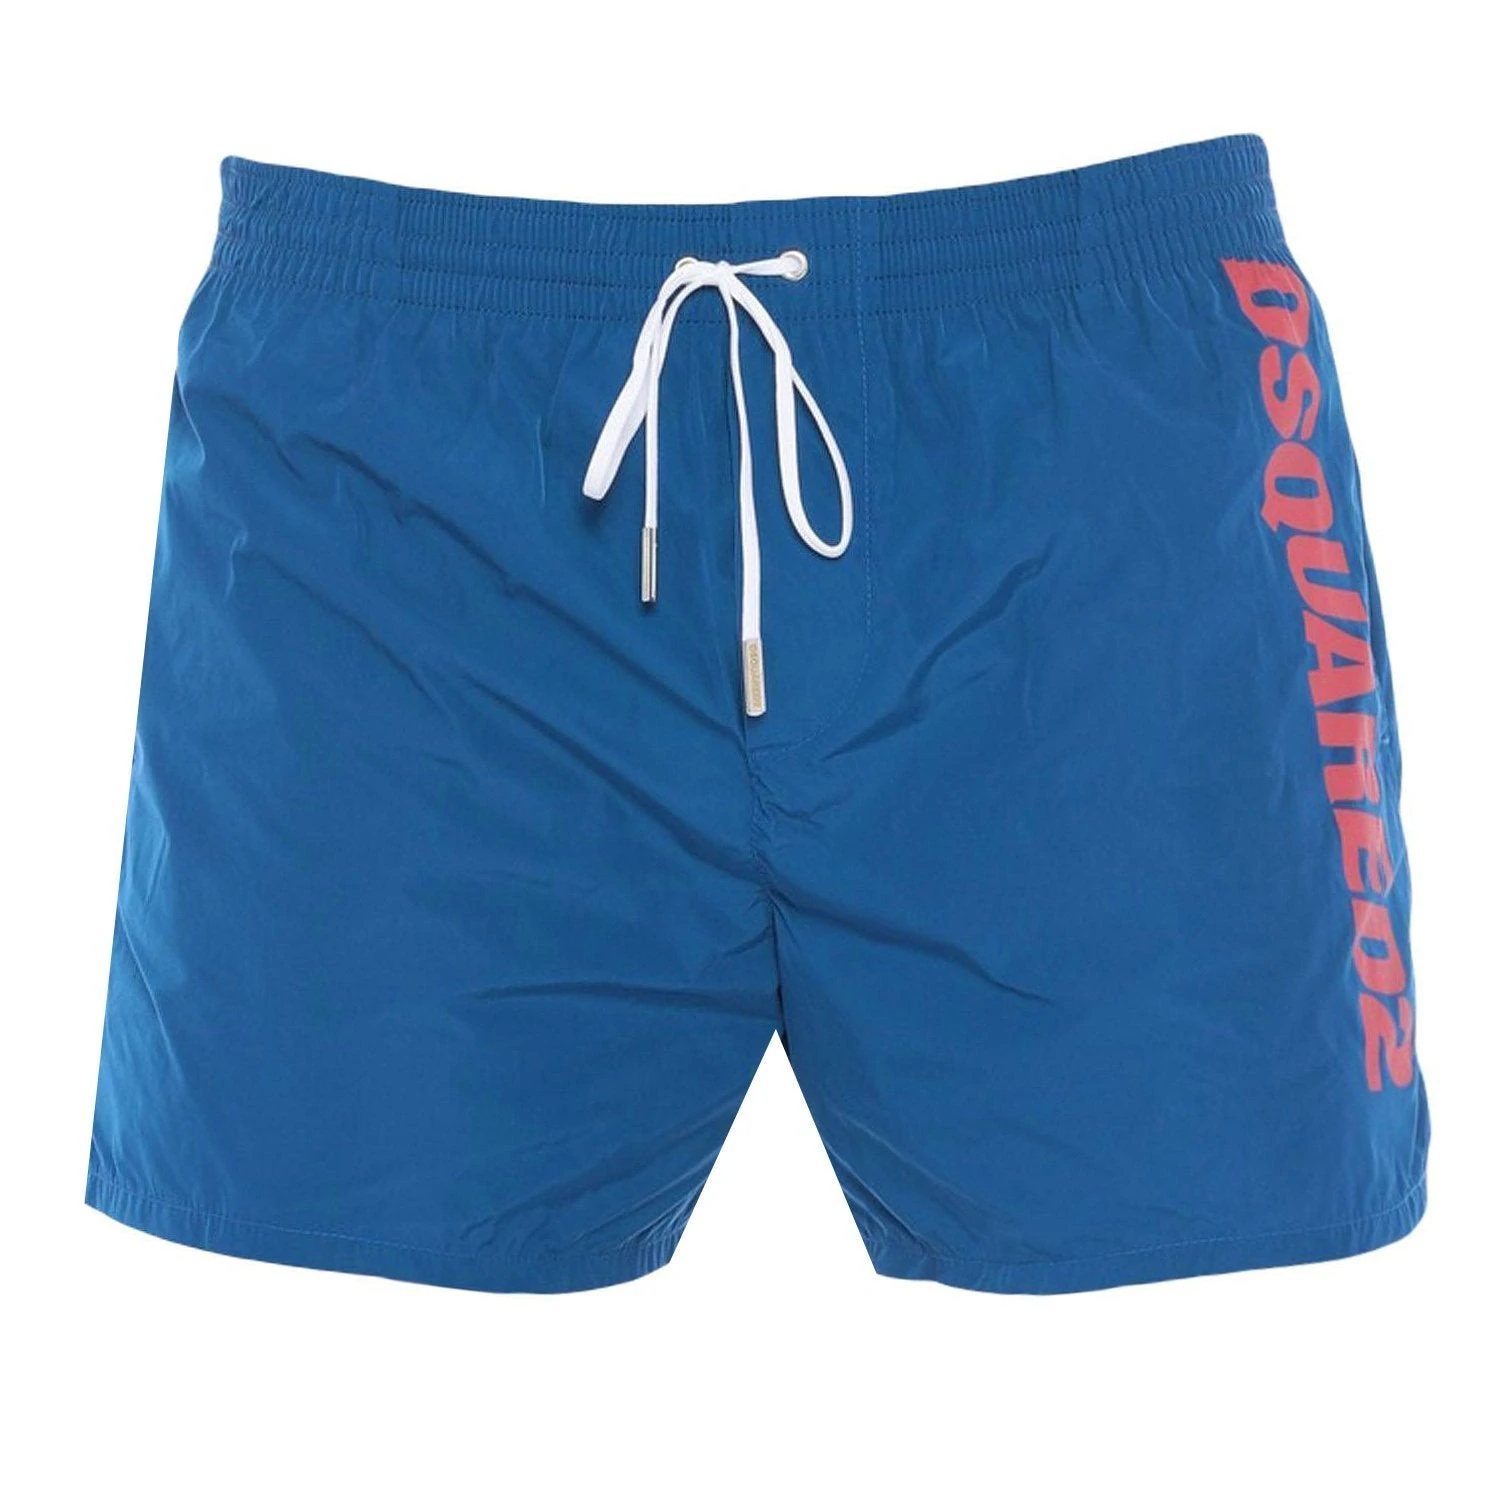 Dsquared2 Black Summer//Swim Shorts All Sizes S TO L Limited Offer!!!